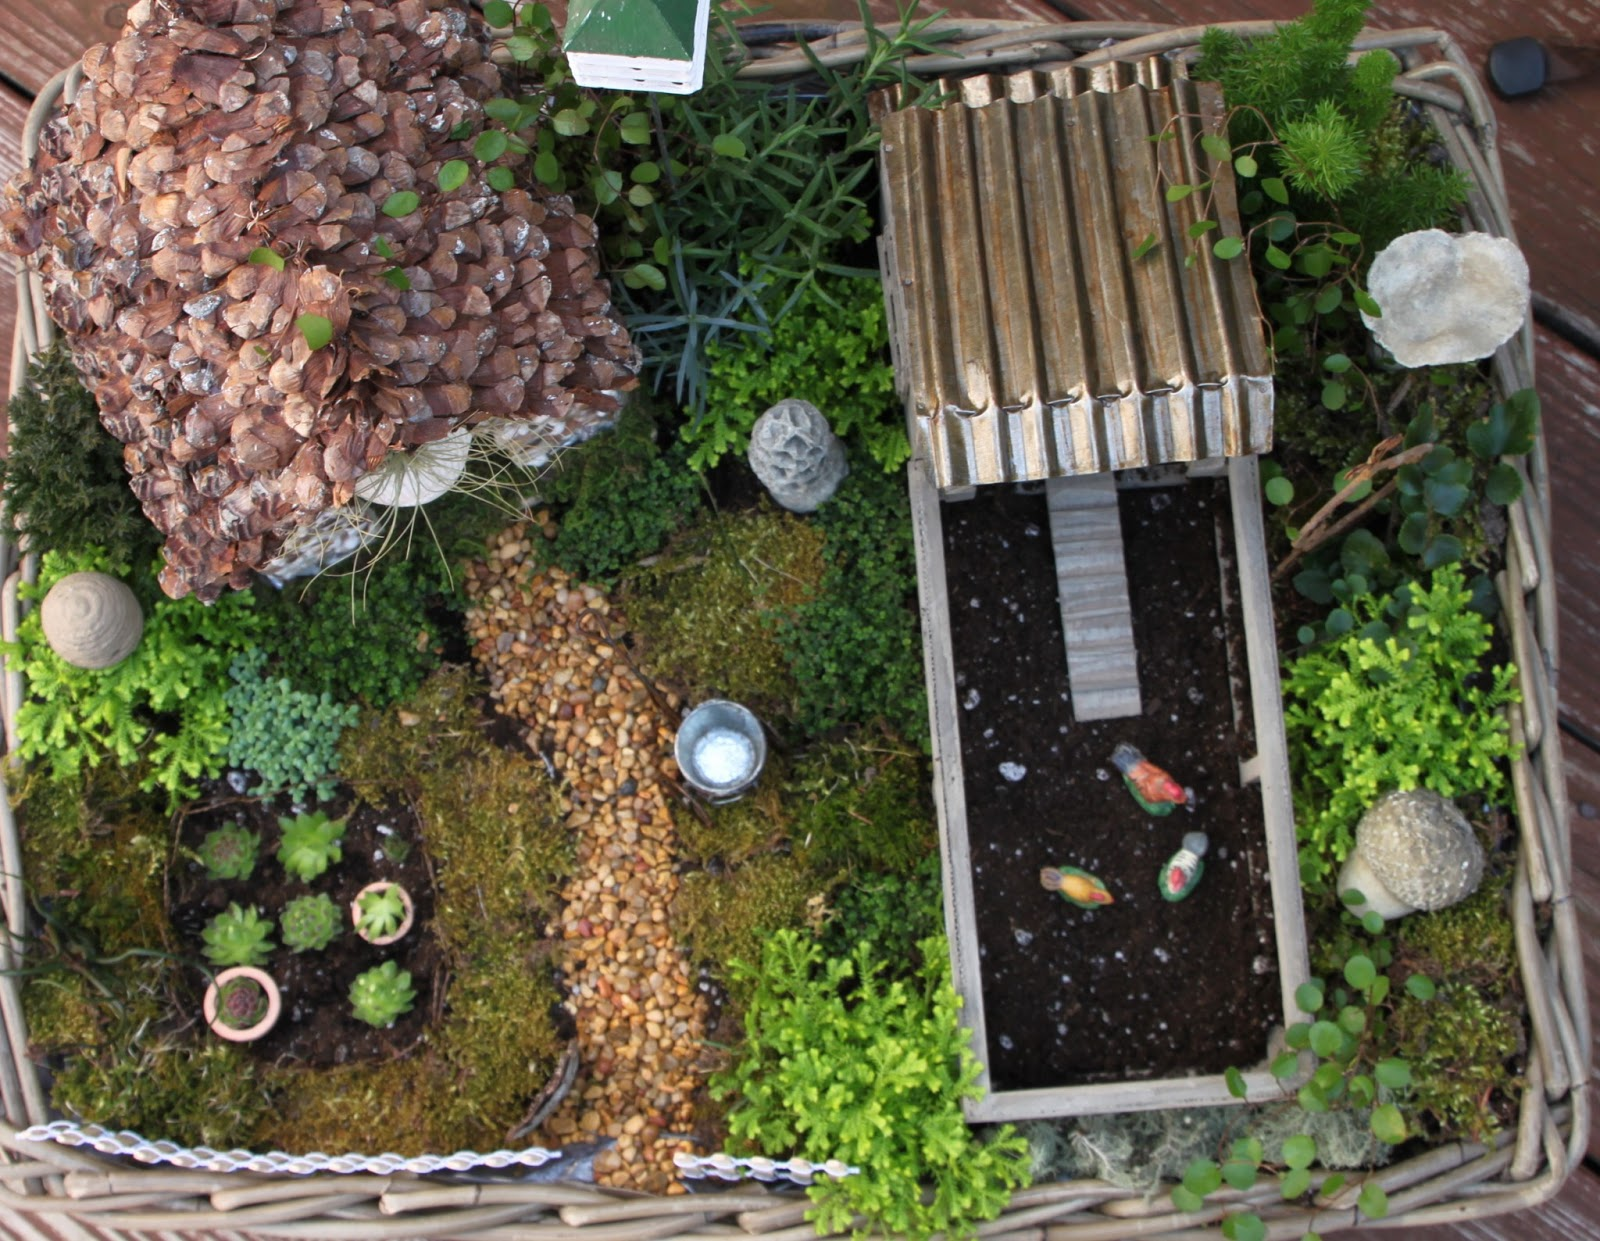 HGTV craft fairy garden